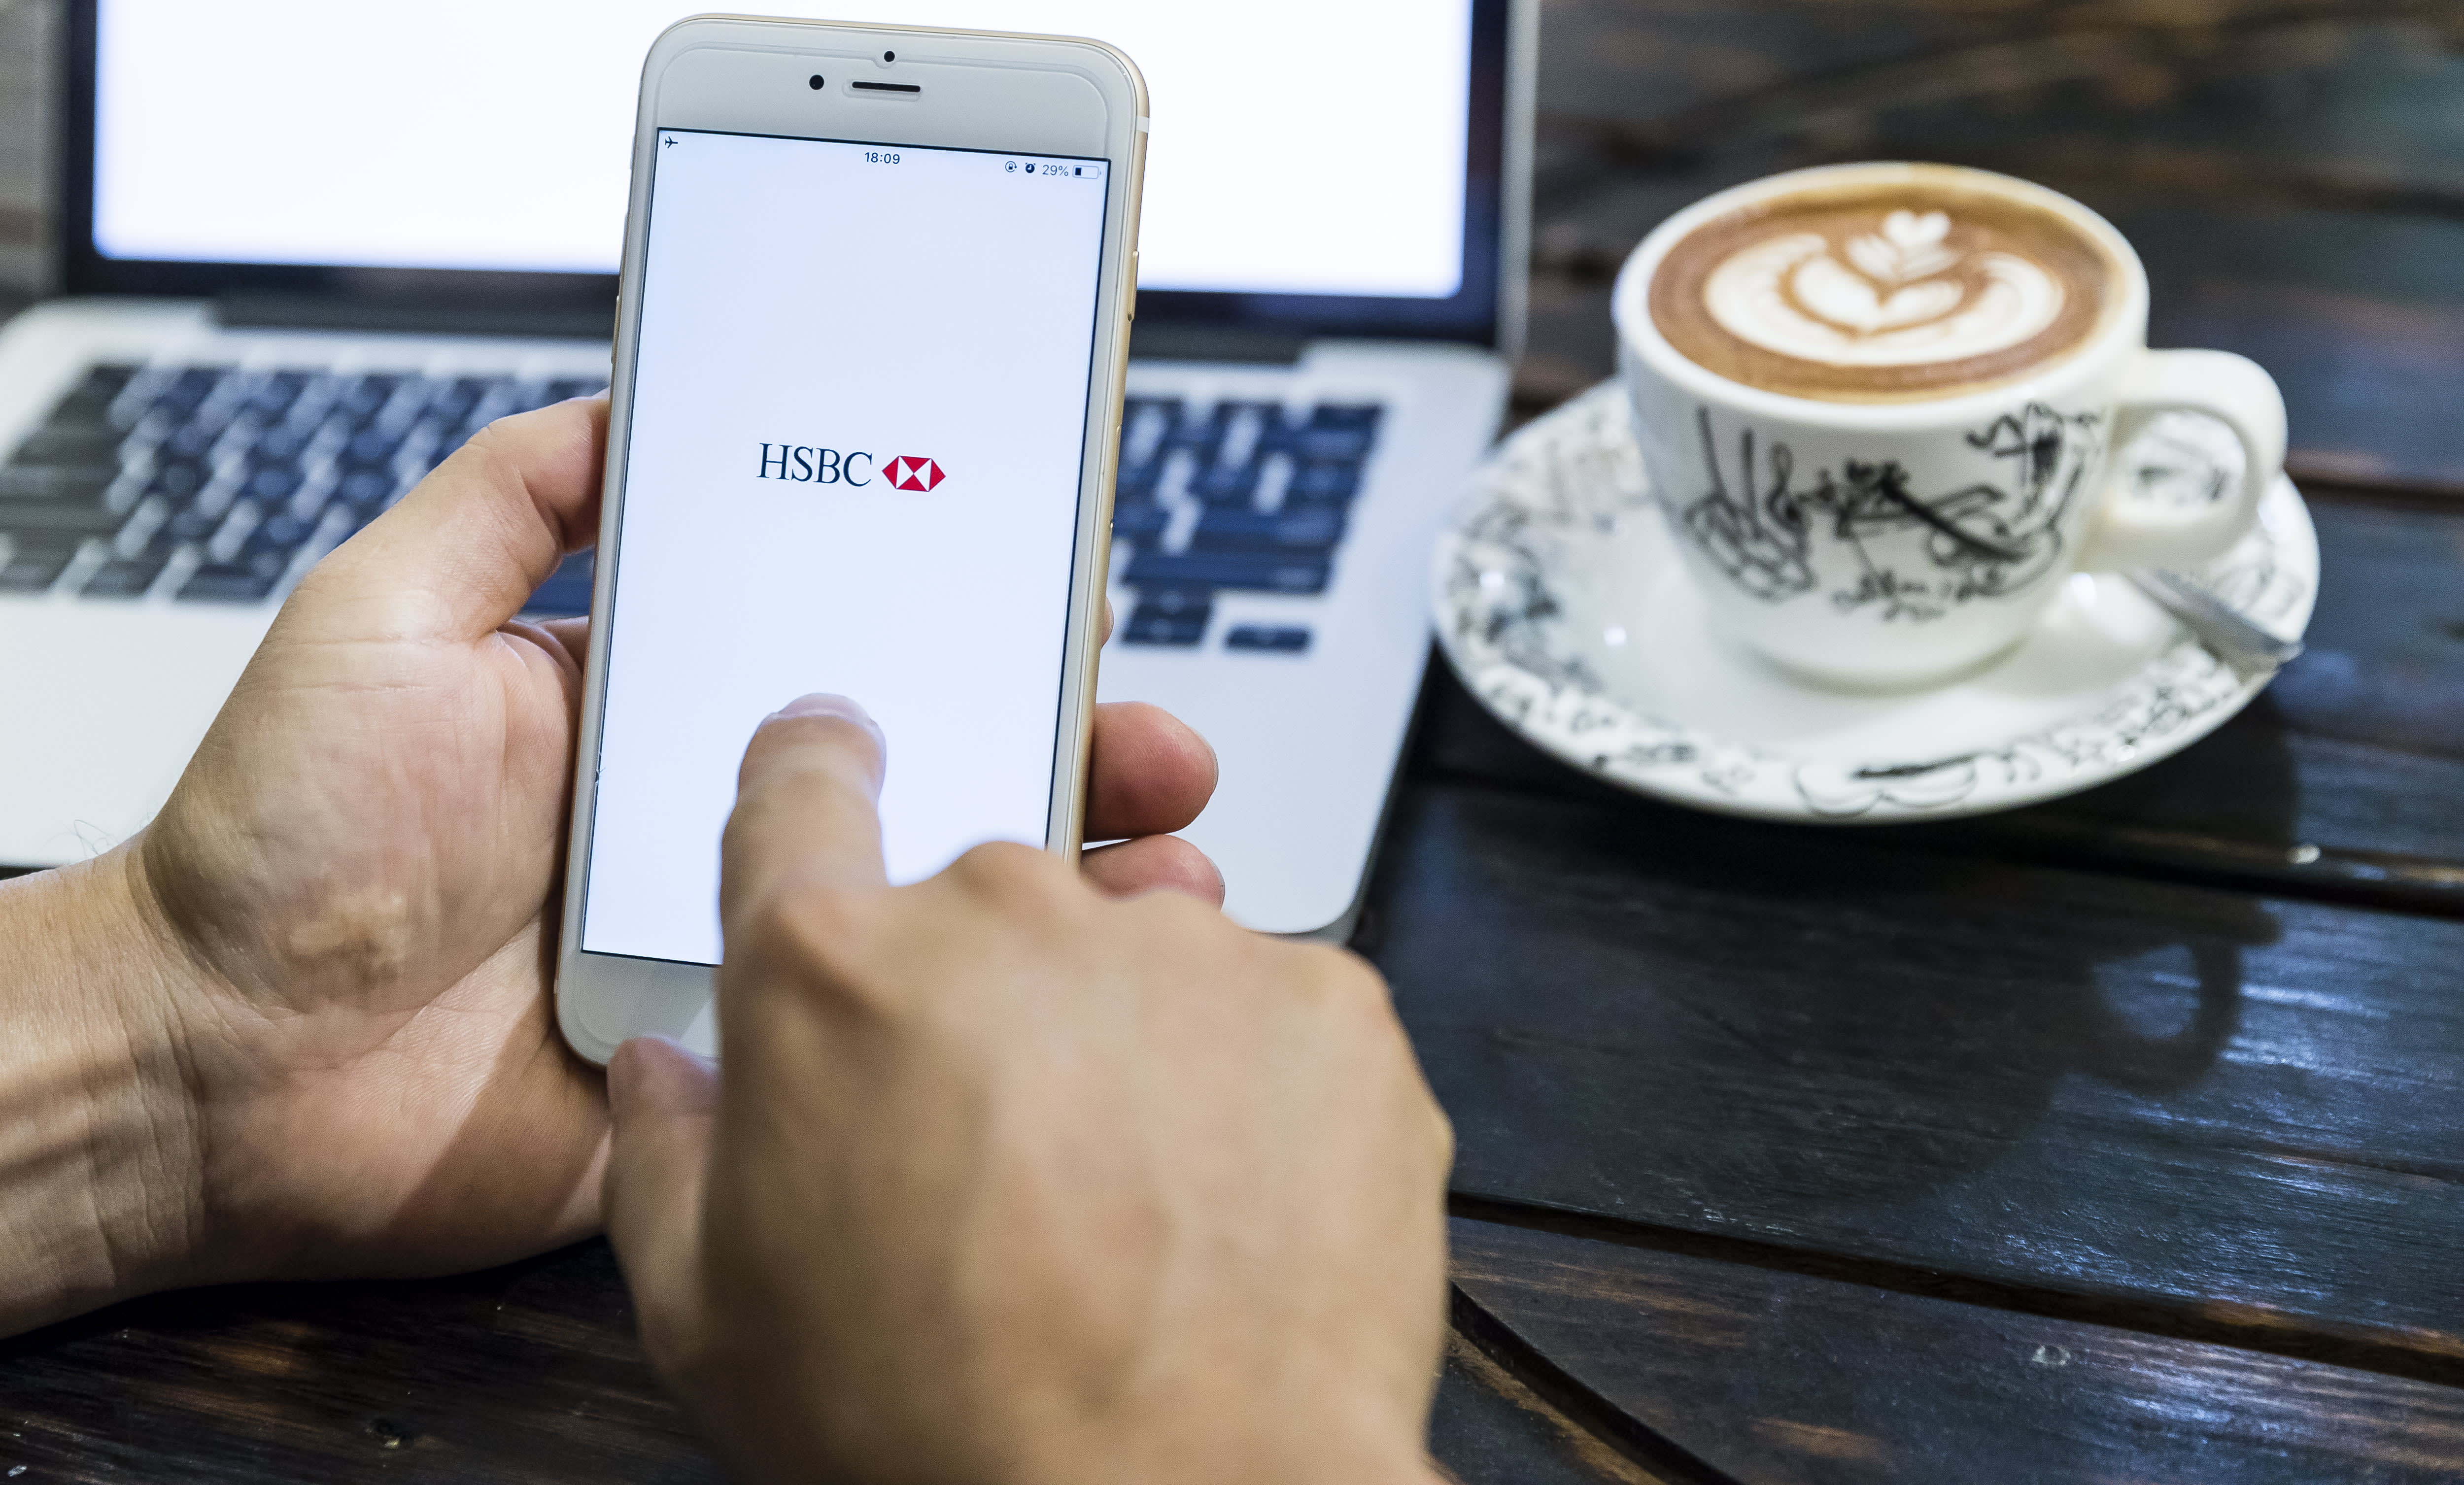 HSBC Connected Money app has racked up 300,000 users in a year